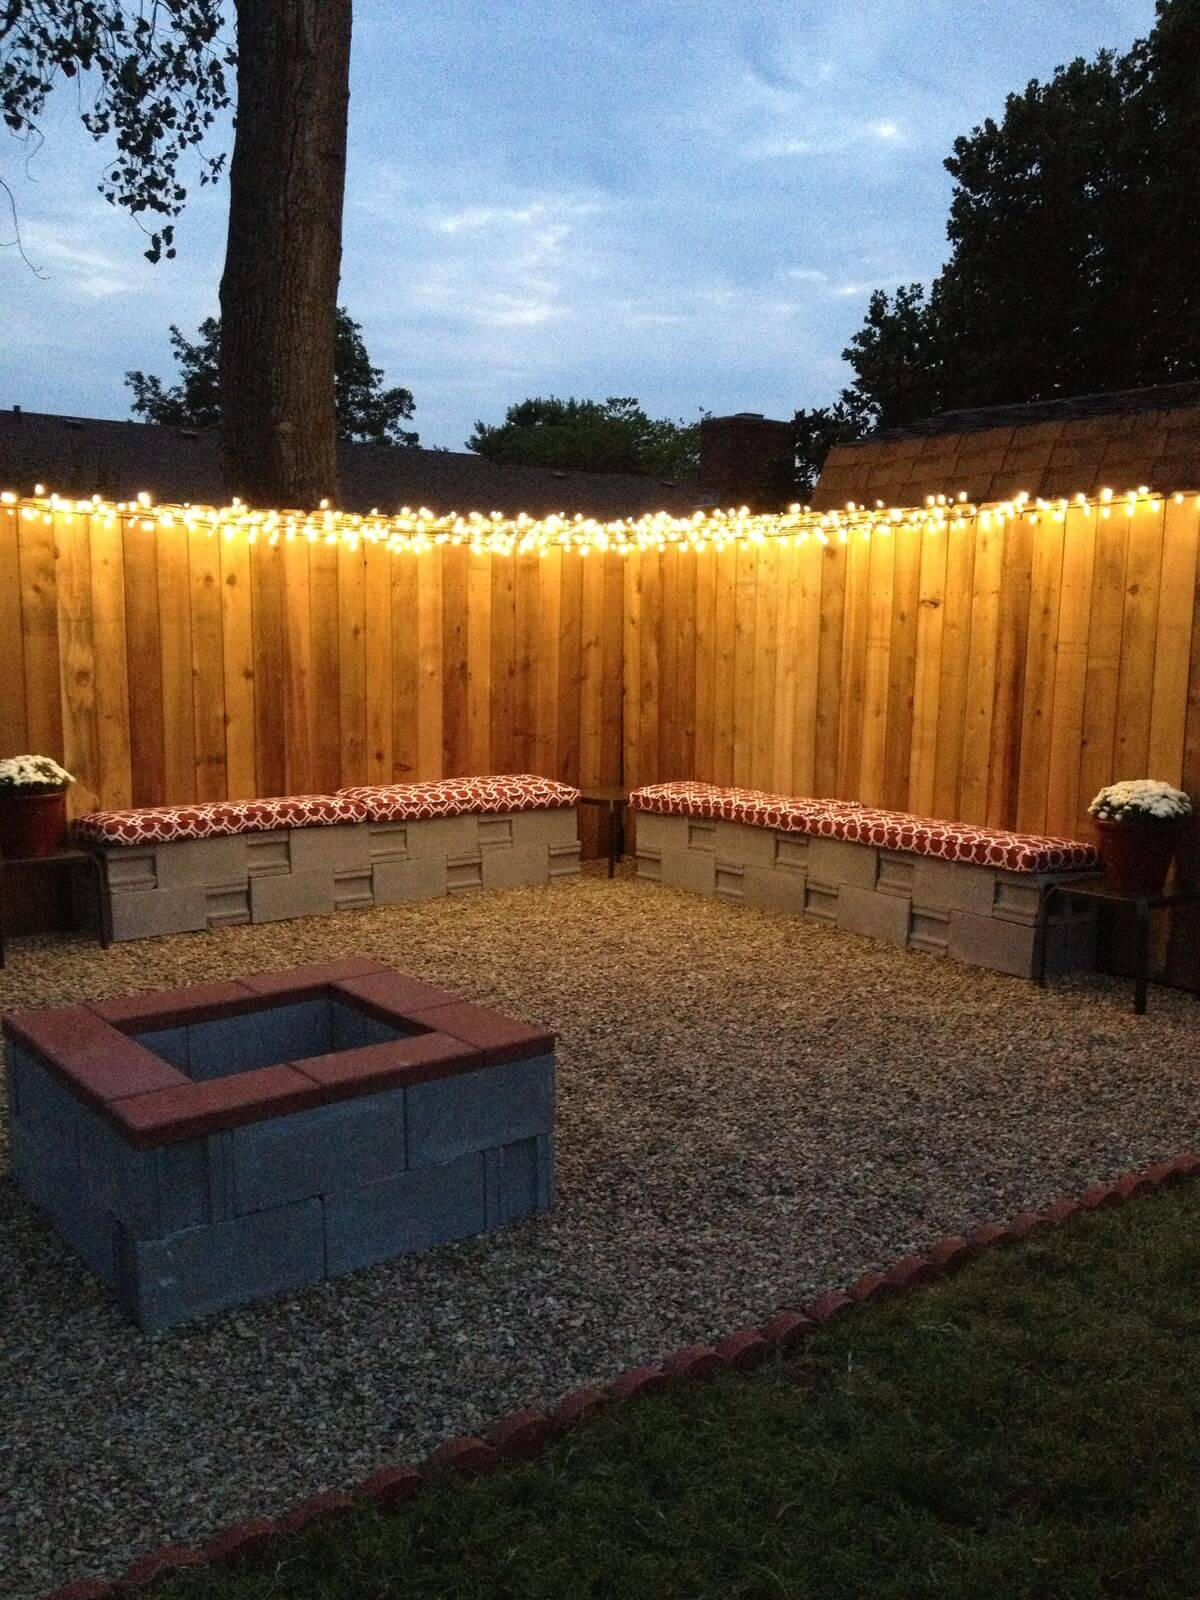 08-backyard-lighting-ideas-homebnc.jpg